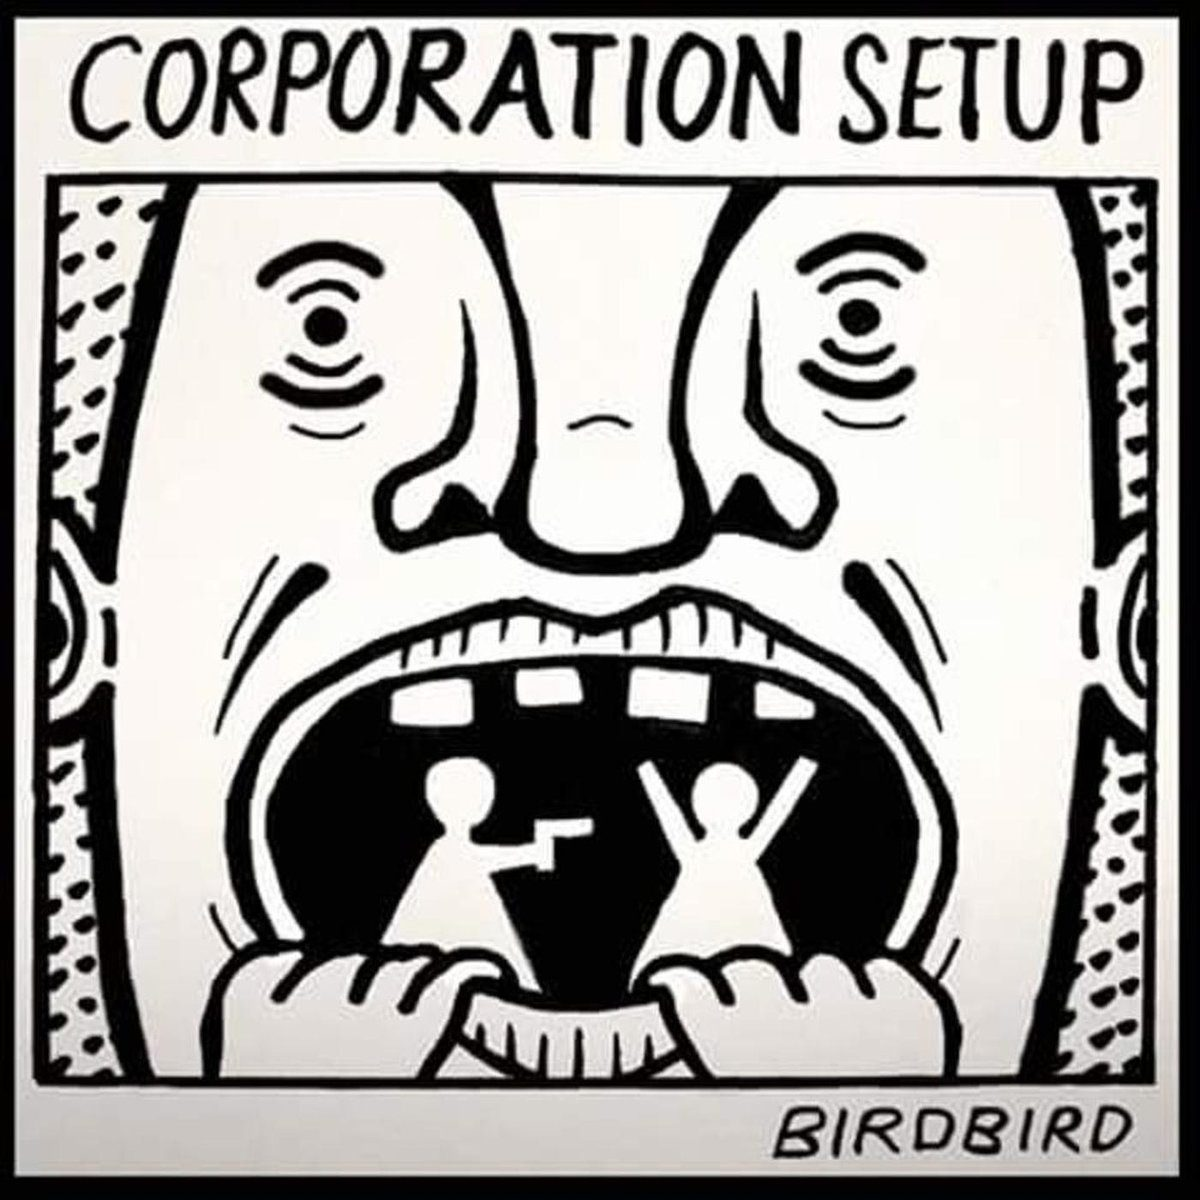 birdbird | Corporation Setup | 3hive.com